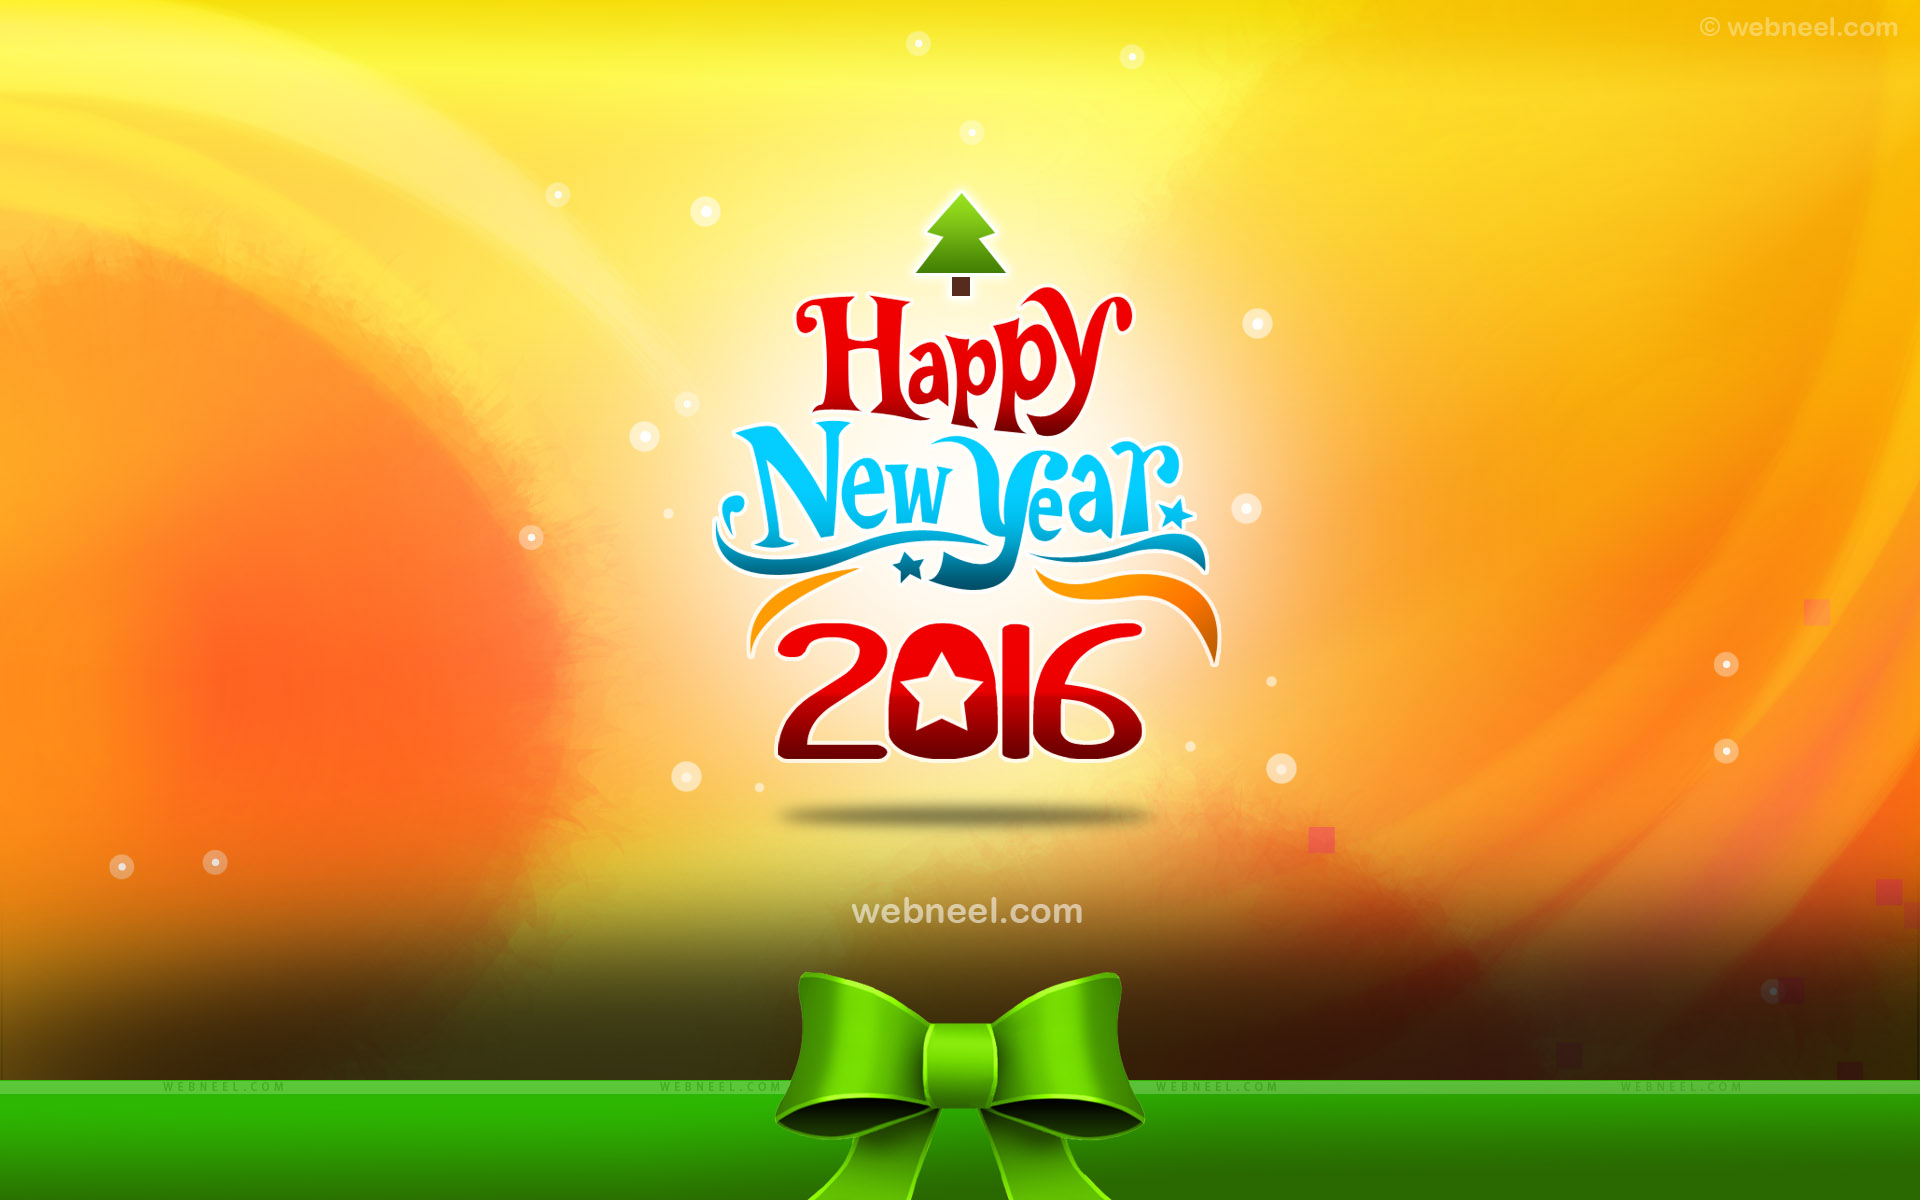 Happy New Year Wallpapers 2016   Images and Graphics 1920x1200